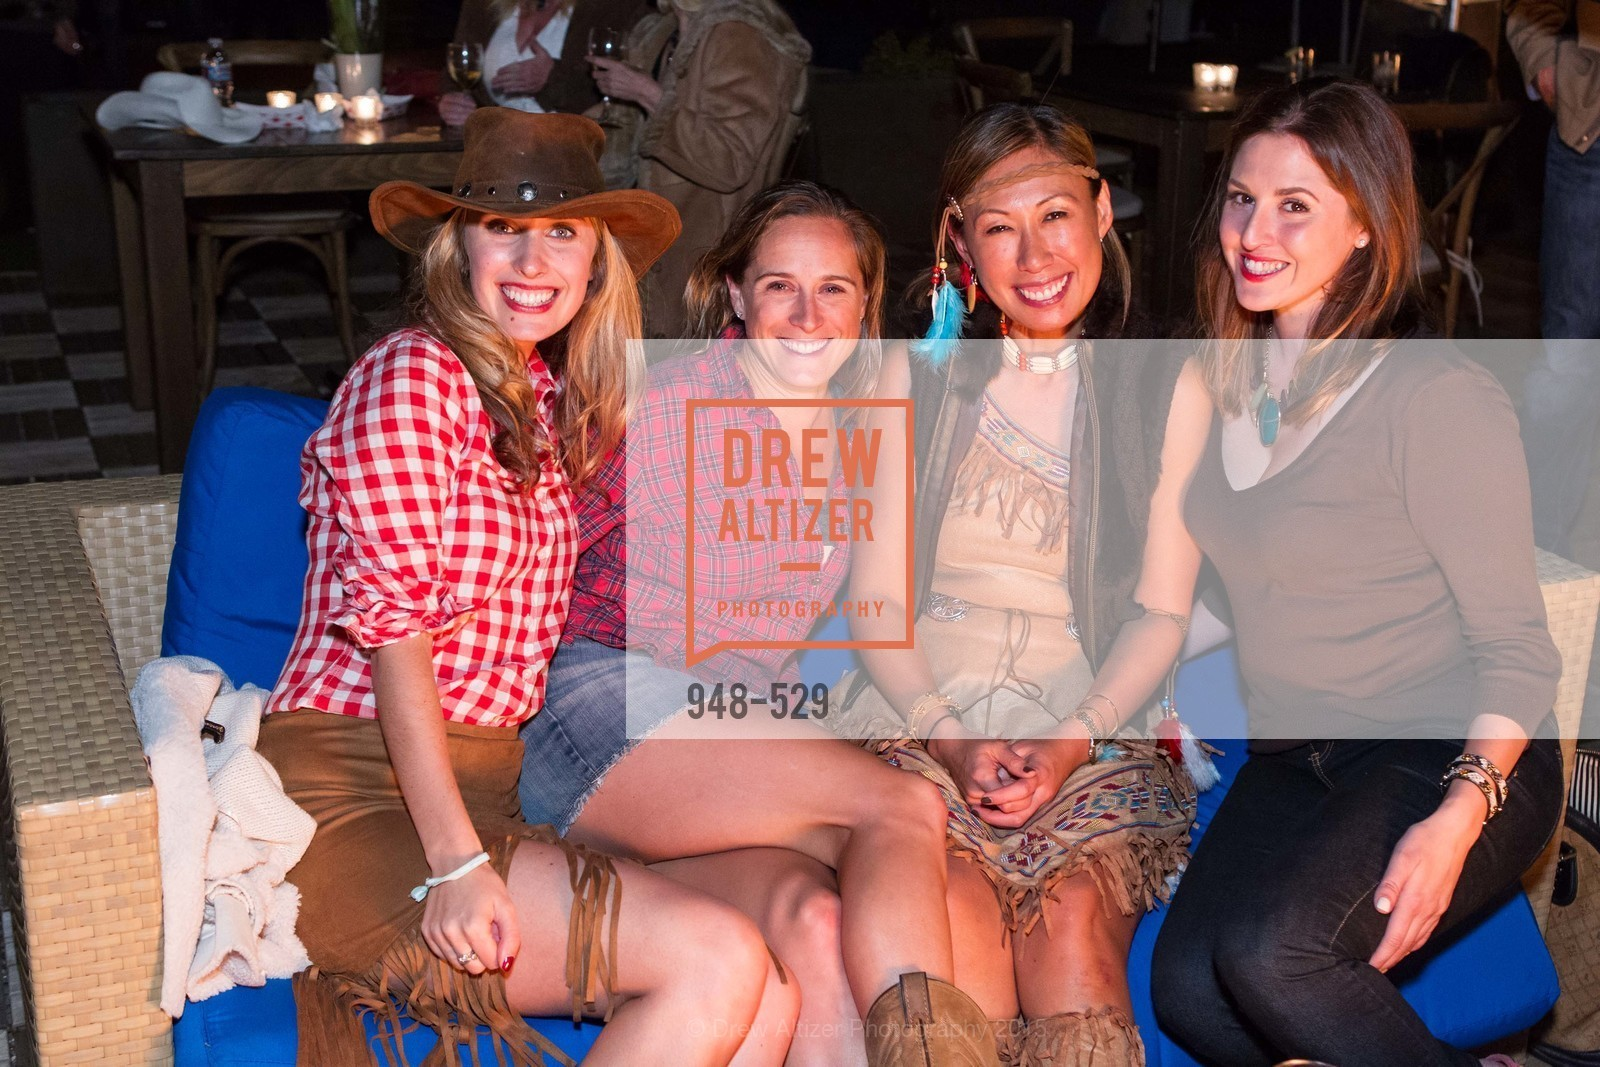 Annaliese Ramsey, Lauren Ramsey, Joy Boatwright, Erin Finnegan, Hooman's Birthday Celebration At Bay Club Ross Valley, Bay Club. 235 Bon Air Rd, November 14th, 2015,Drew Altizer, Drew Altizer Photography, full-service agency, private events, San Francisco photographer, photographer california